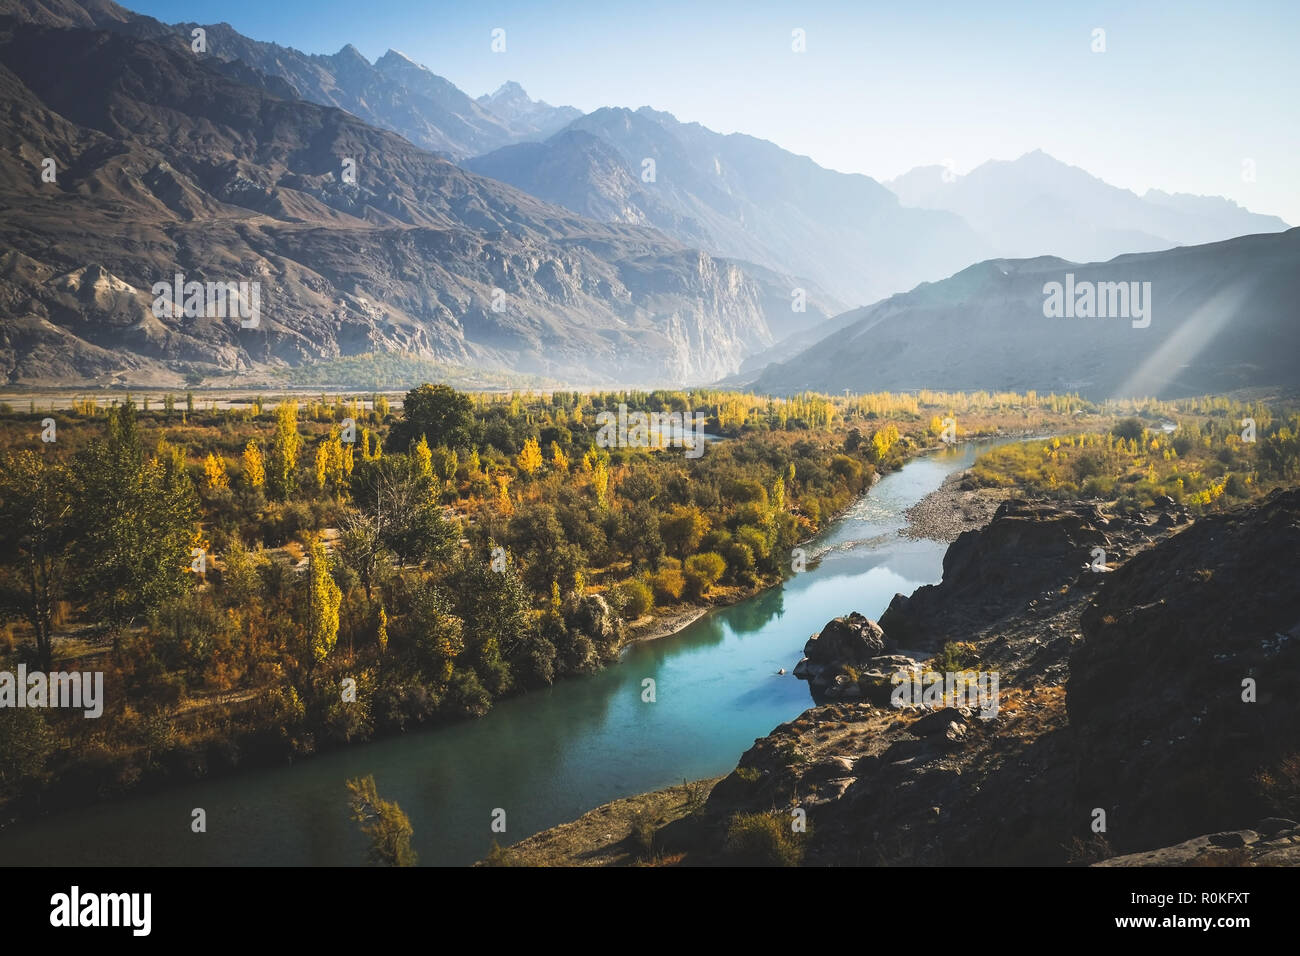 Gakuch in autumn show river flow through colorful forest and surrounded by mountains in karakoram range. Ghizer, Gilgit-Baltistan, Pakistan. - Stock Image